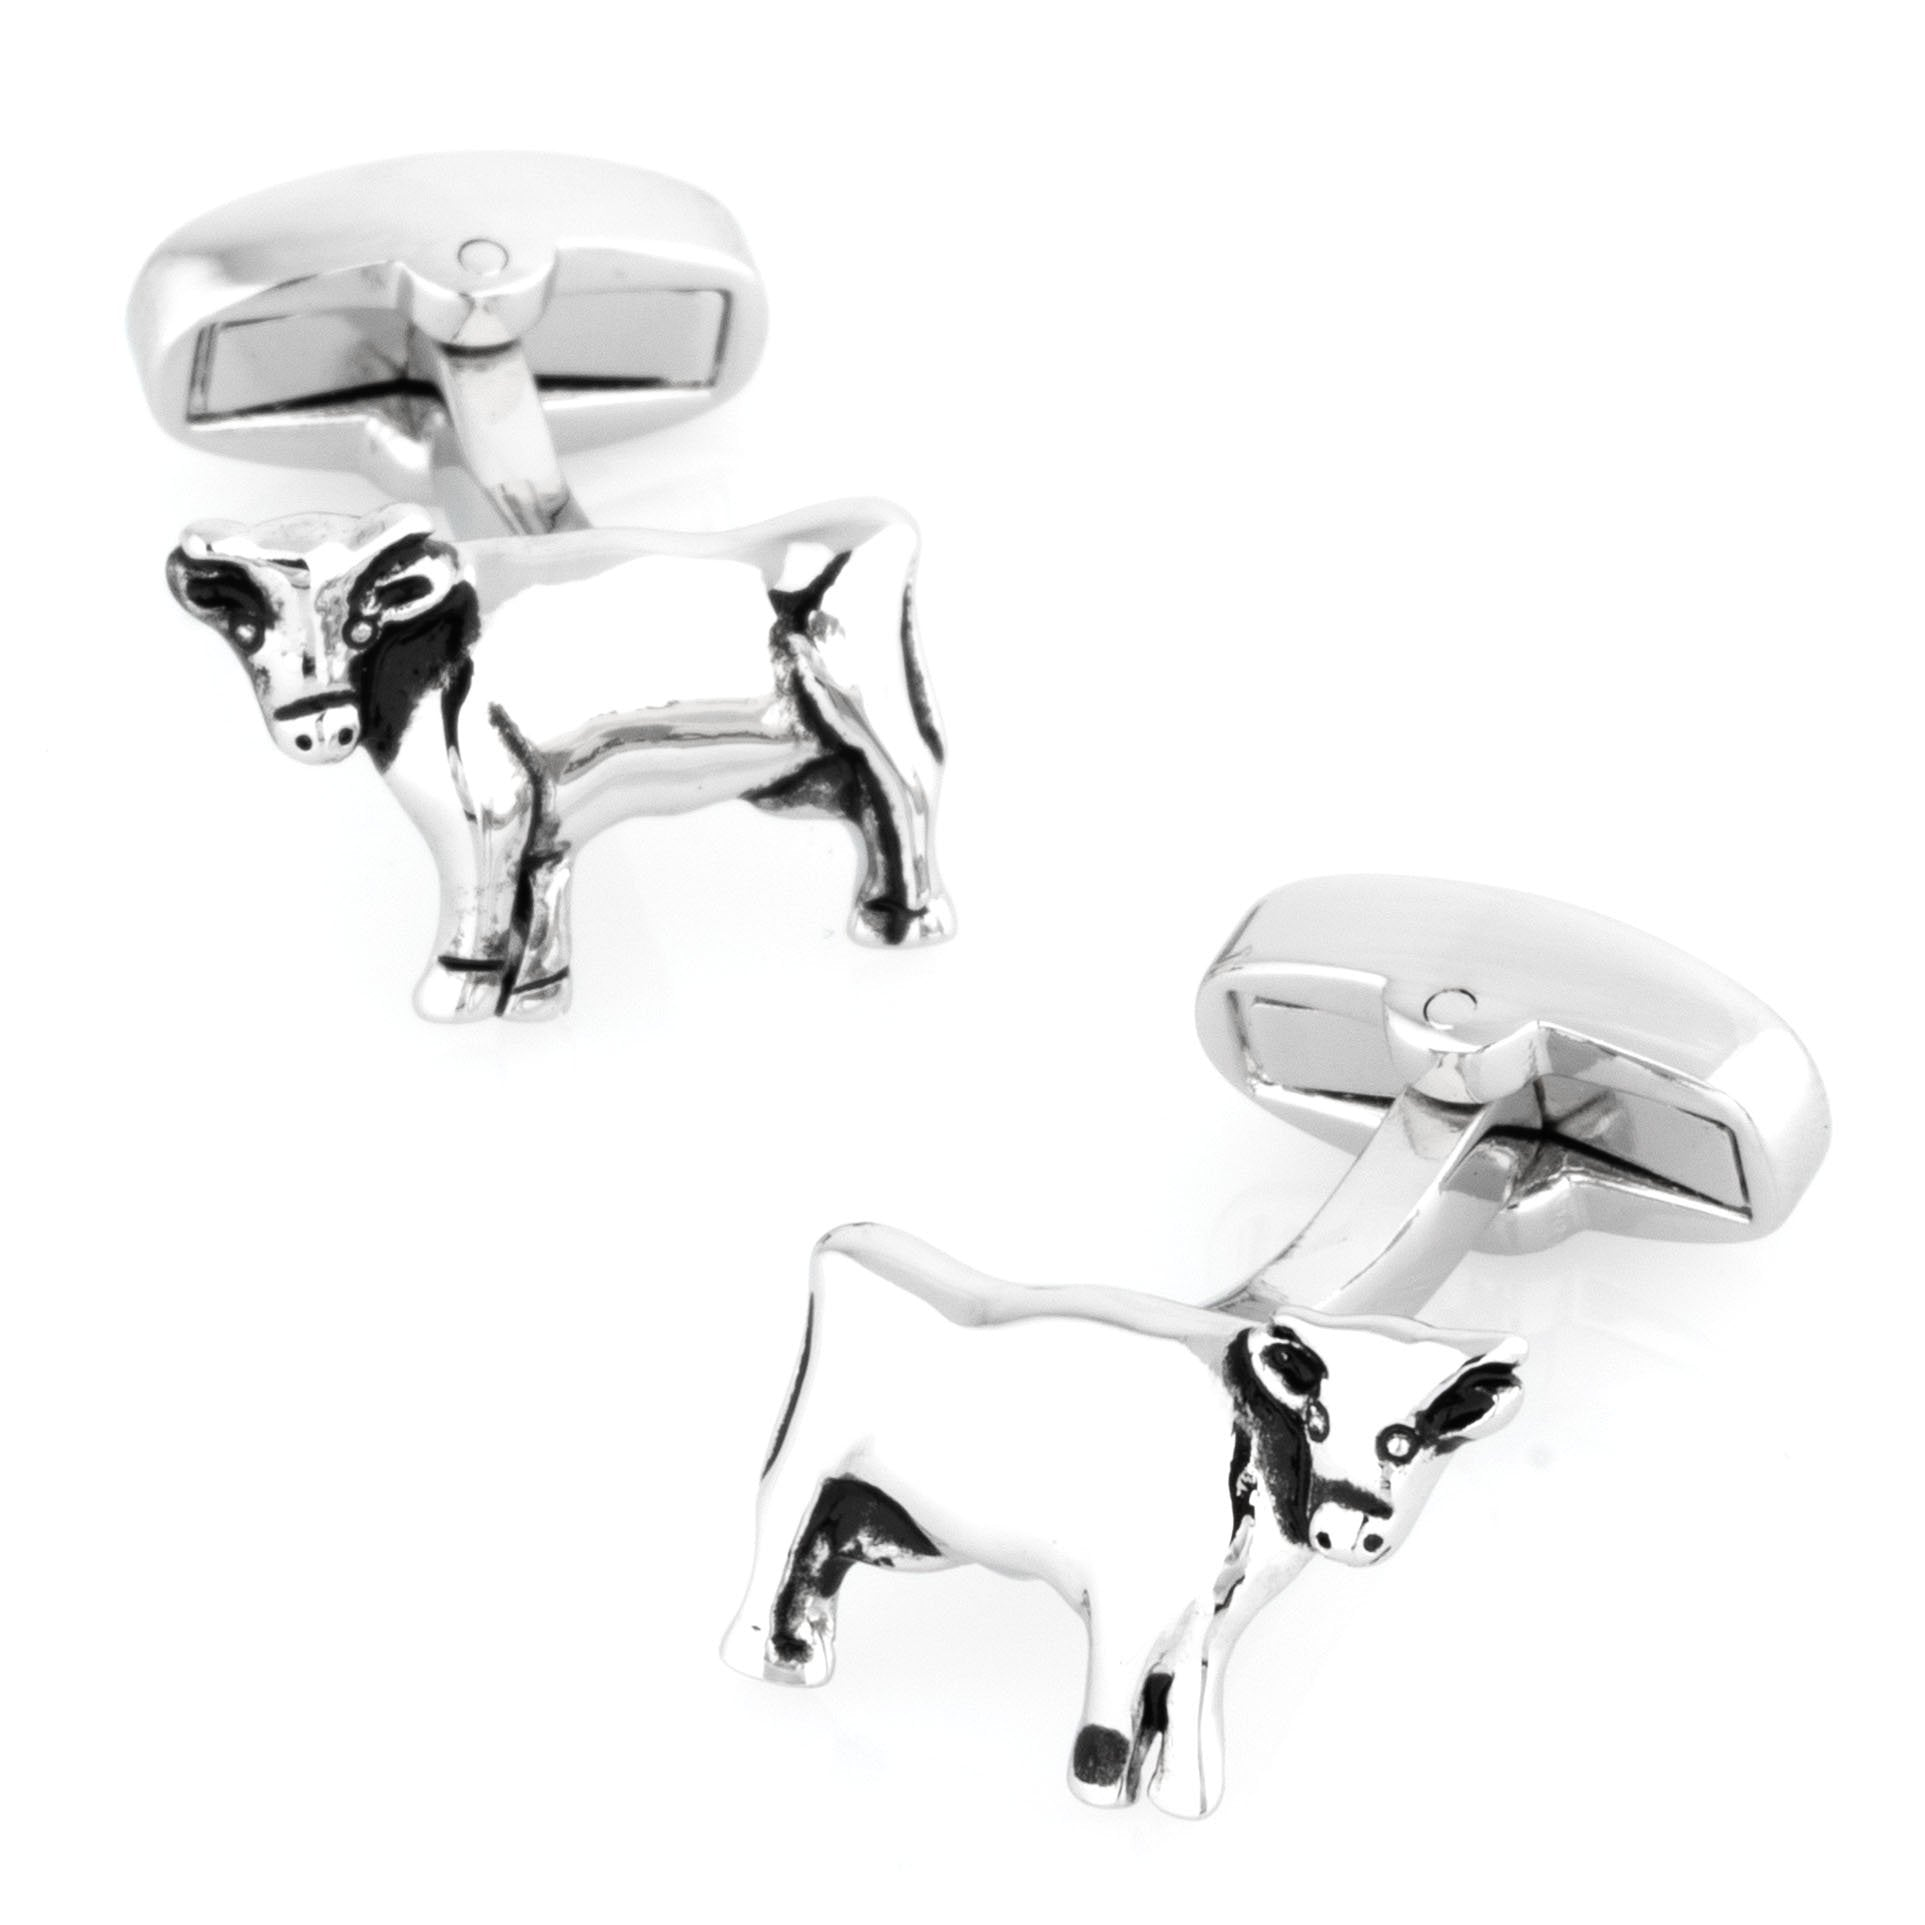 Silver Cow Cufflinks, Novelty Cufflinks, Cuffed.com.au, CL7081, Animals, Farm, Clinks Australia